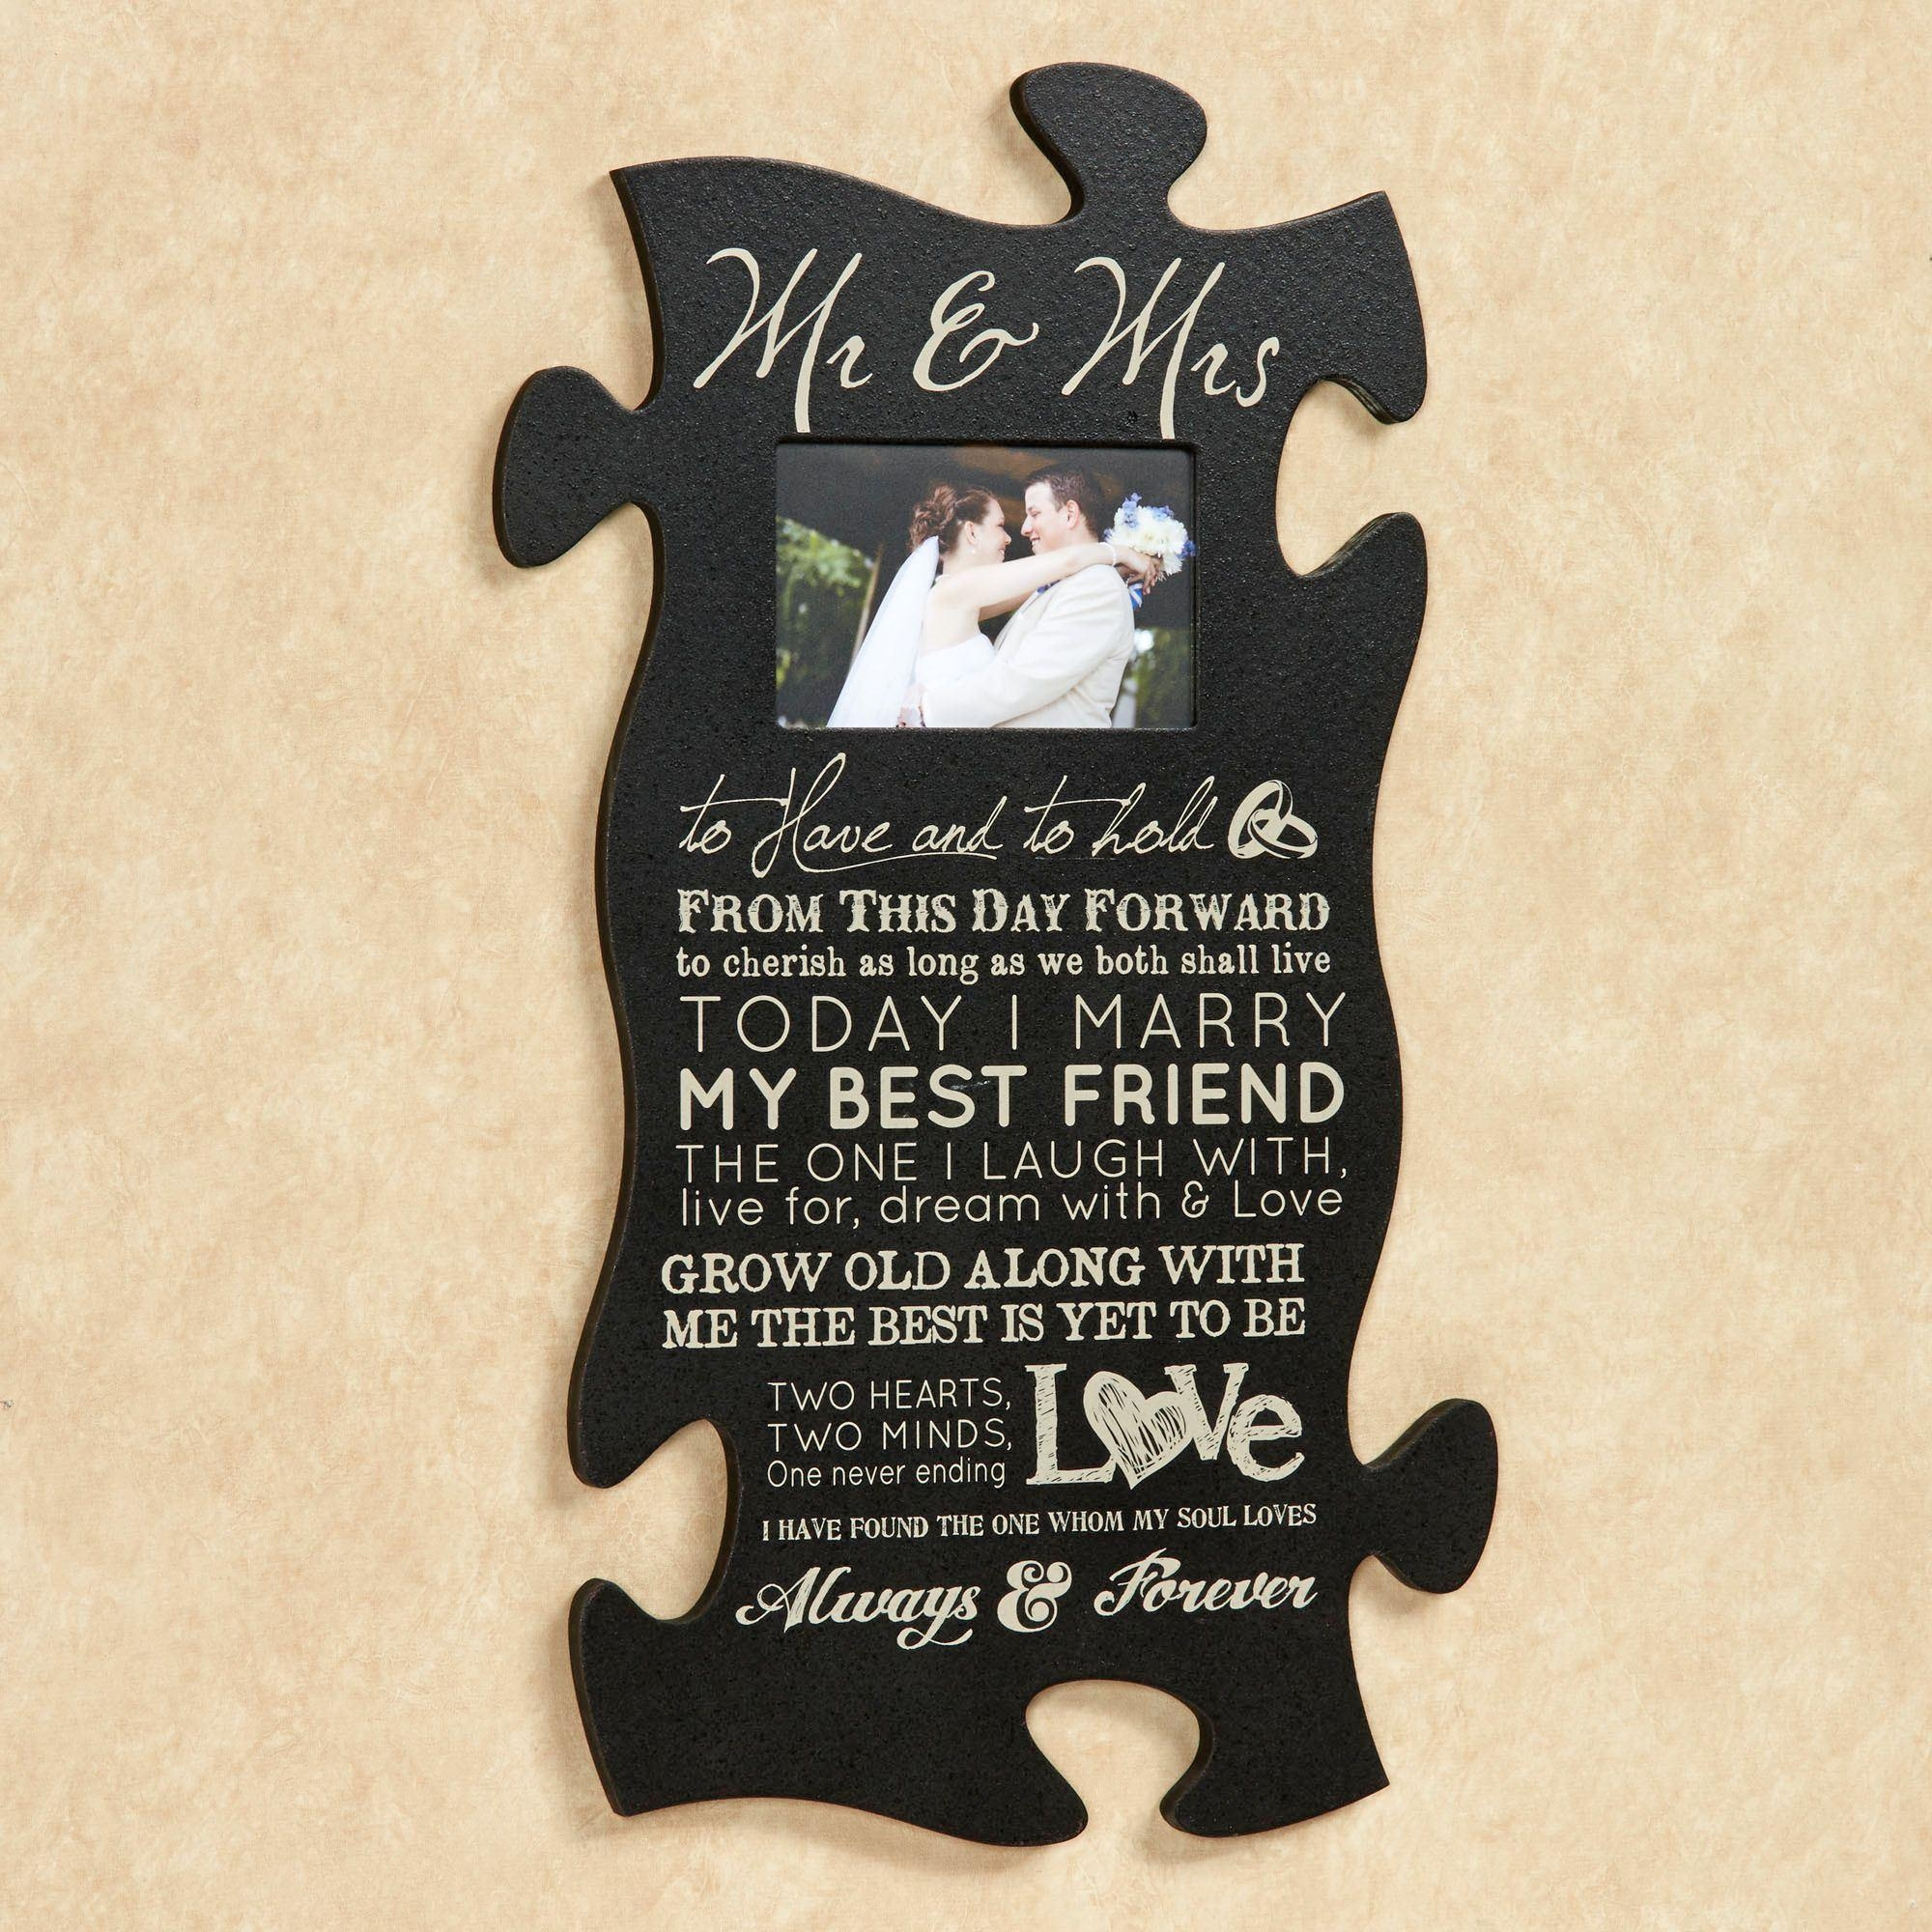 Love And Marriage Photo Frame Puzzle Piece Wall Art Inside Mr And Mrs Wall Art (View 20 of 20)